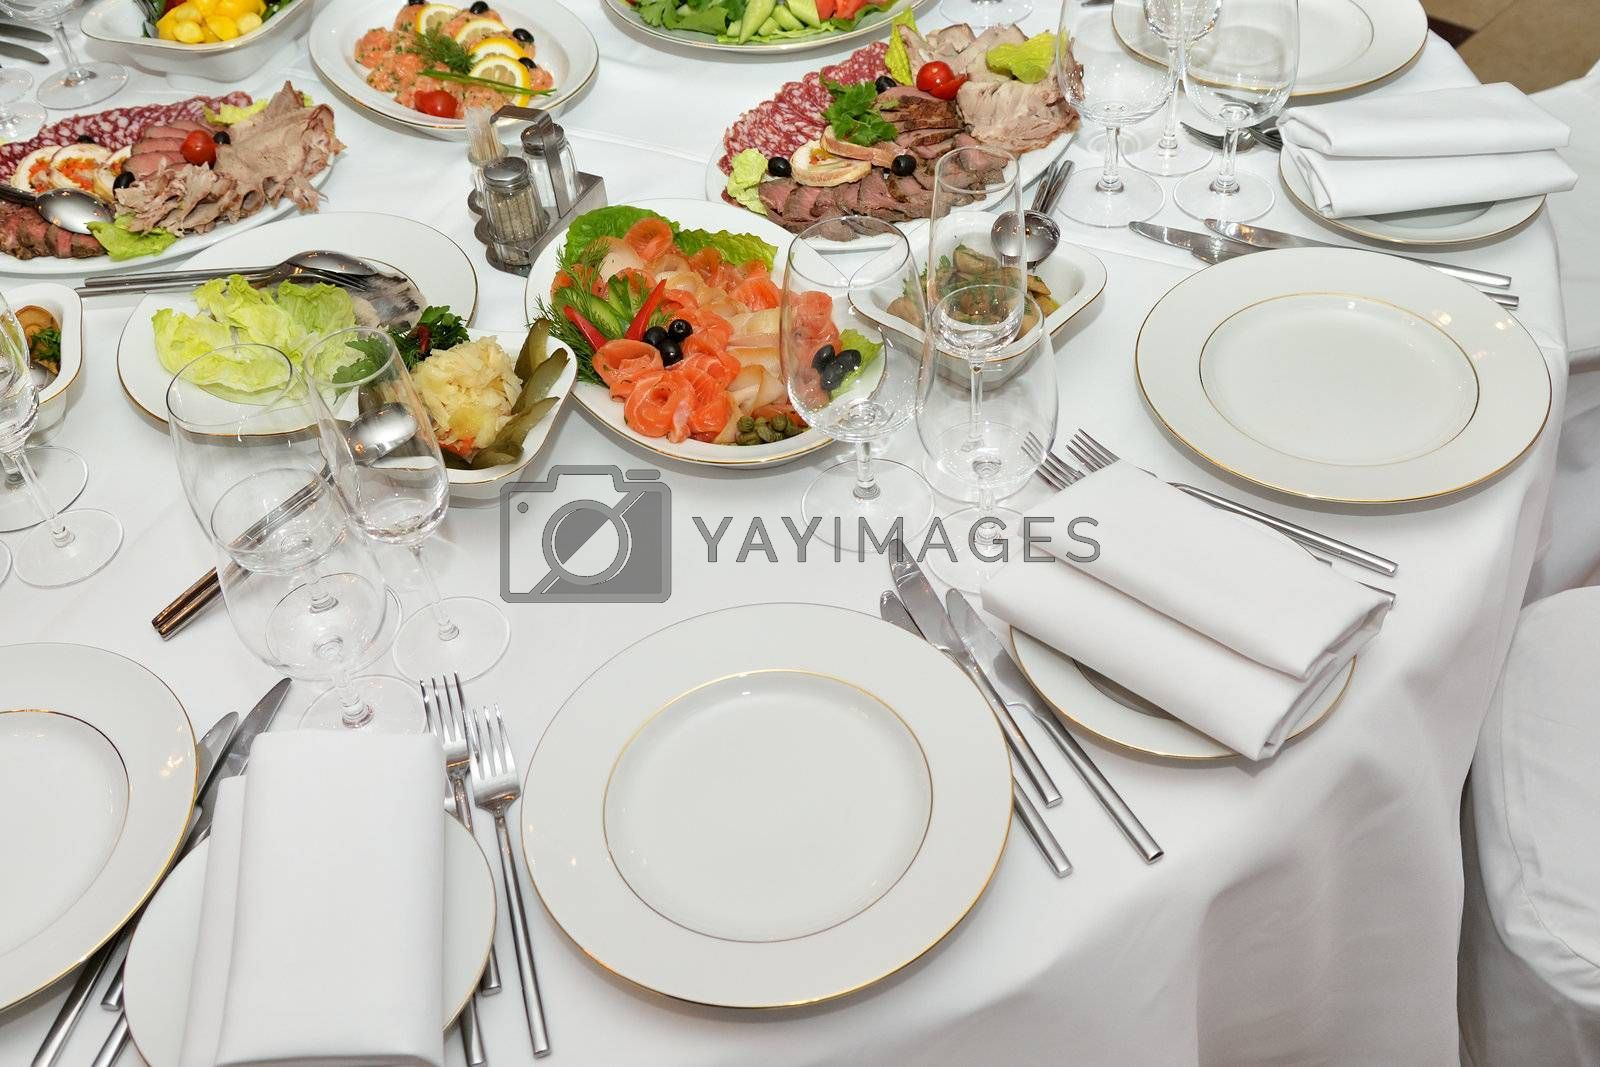 Served table with appetizers, dishes and glasses.